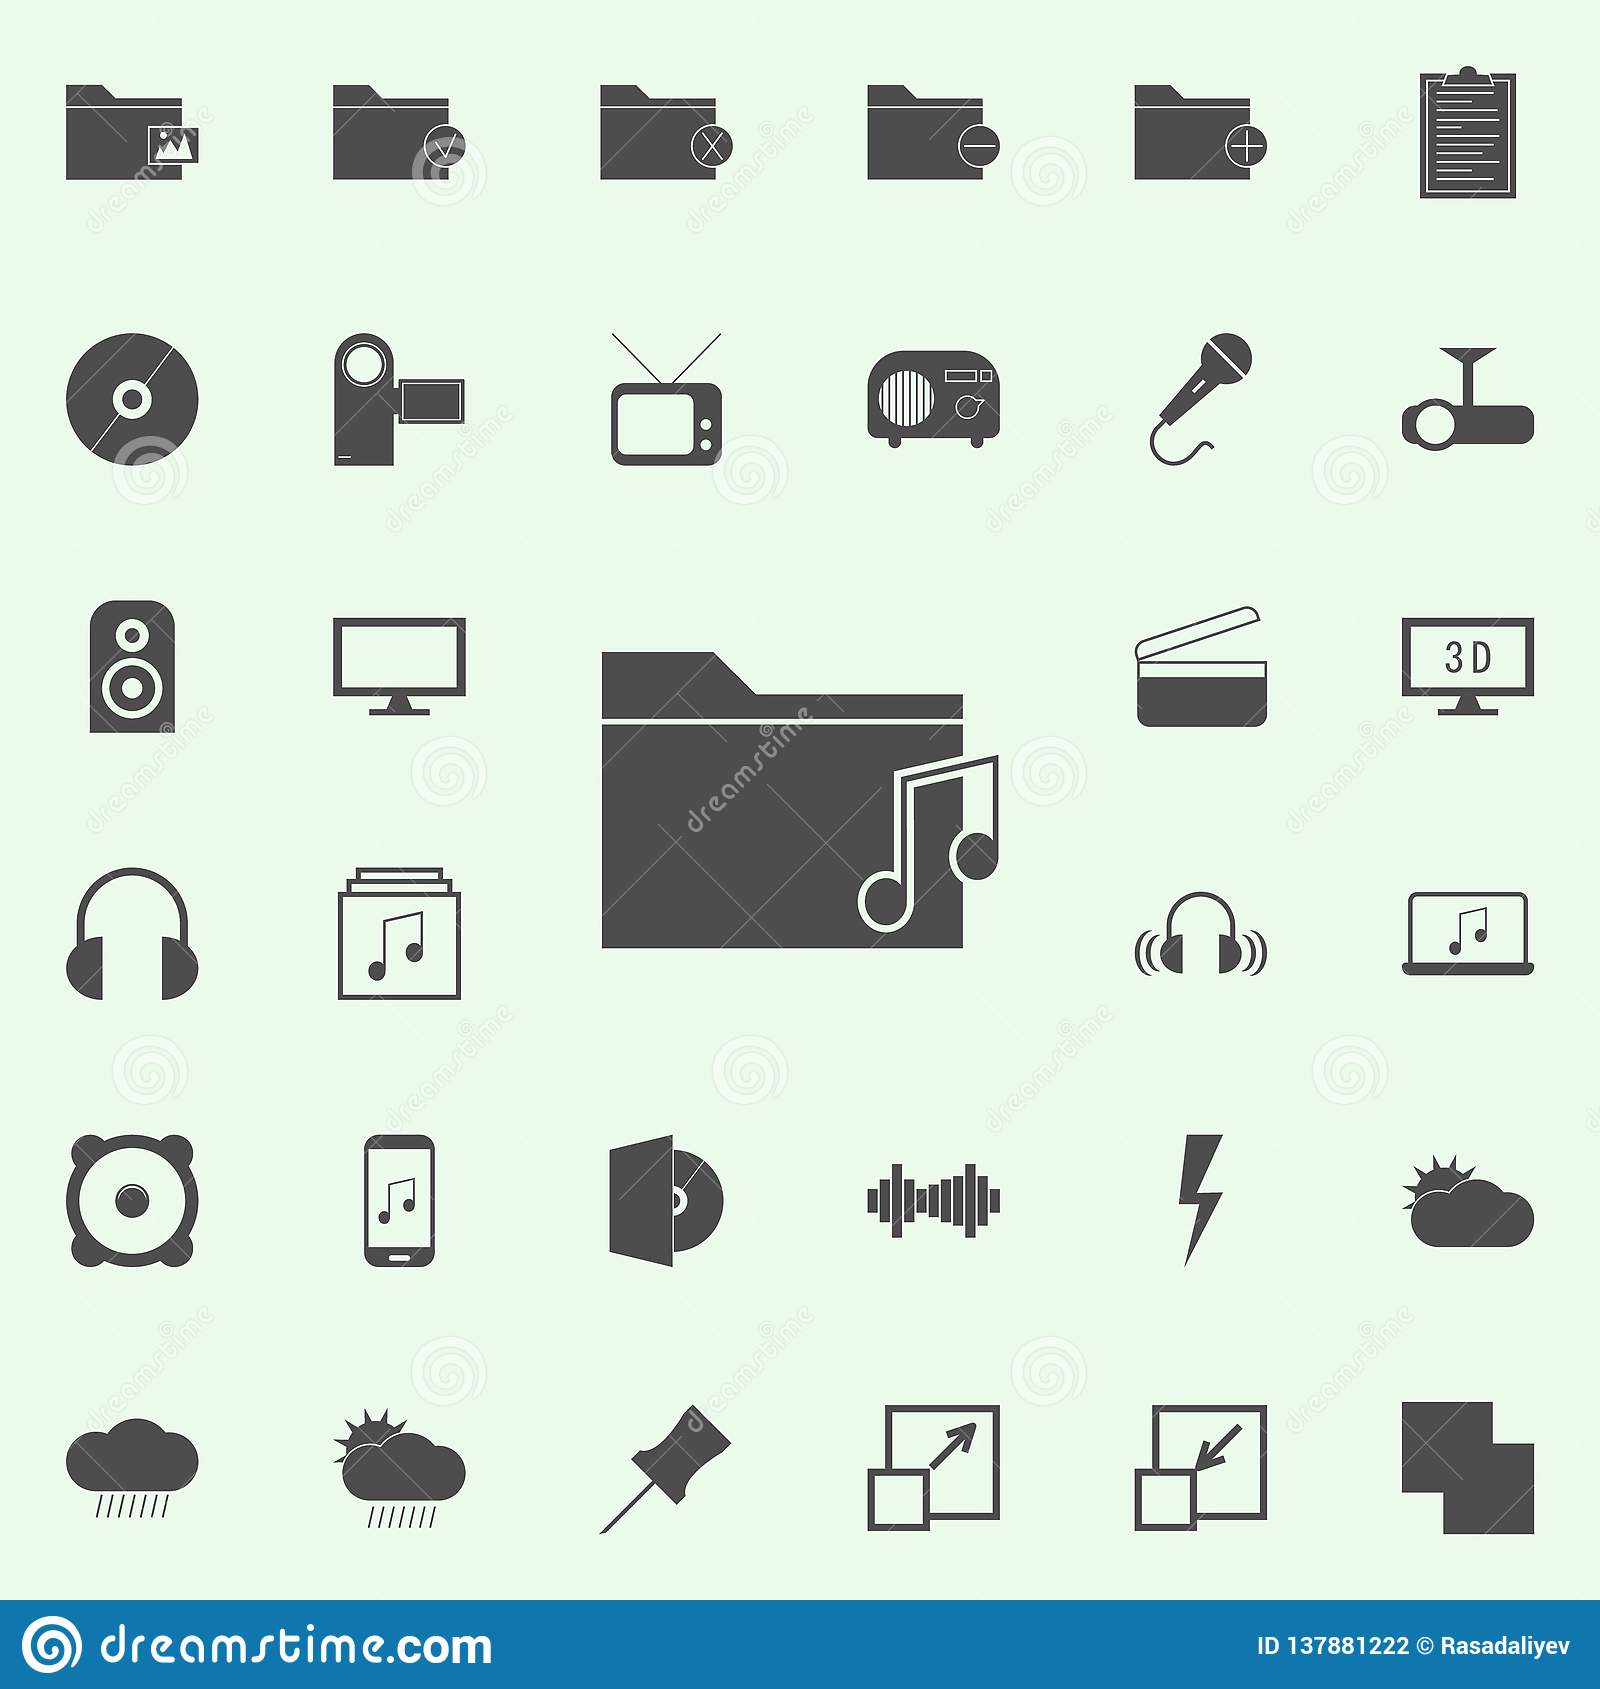 folder with music icon. web icons universal set for web and mobile